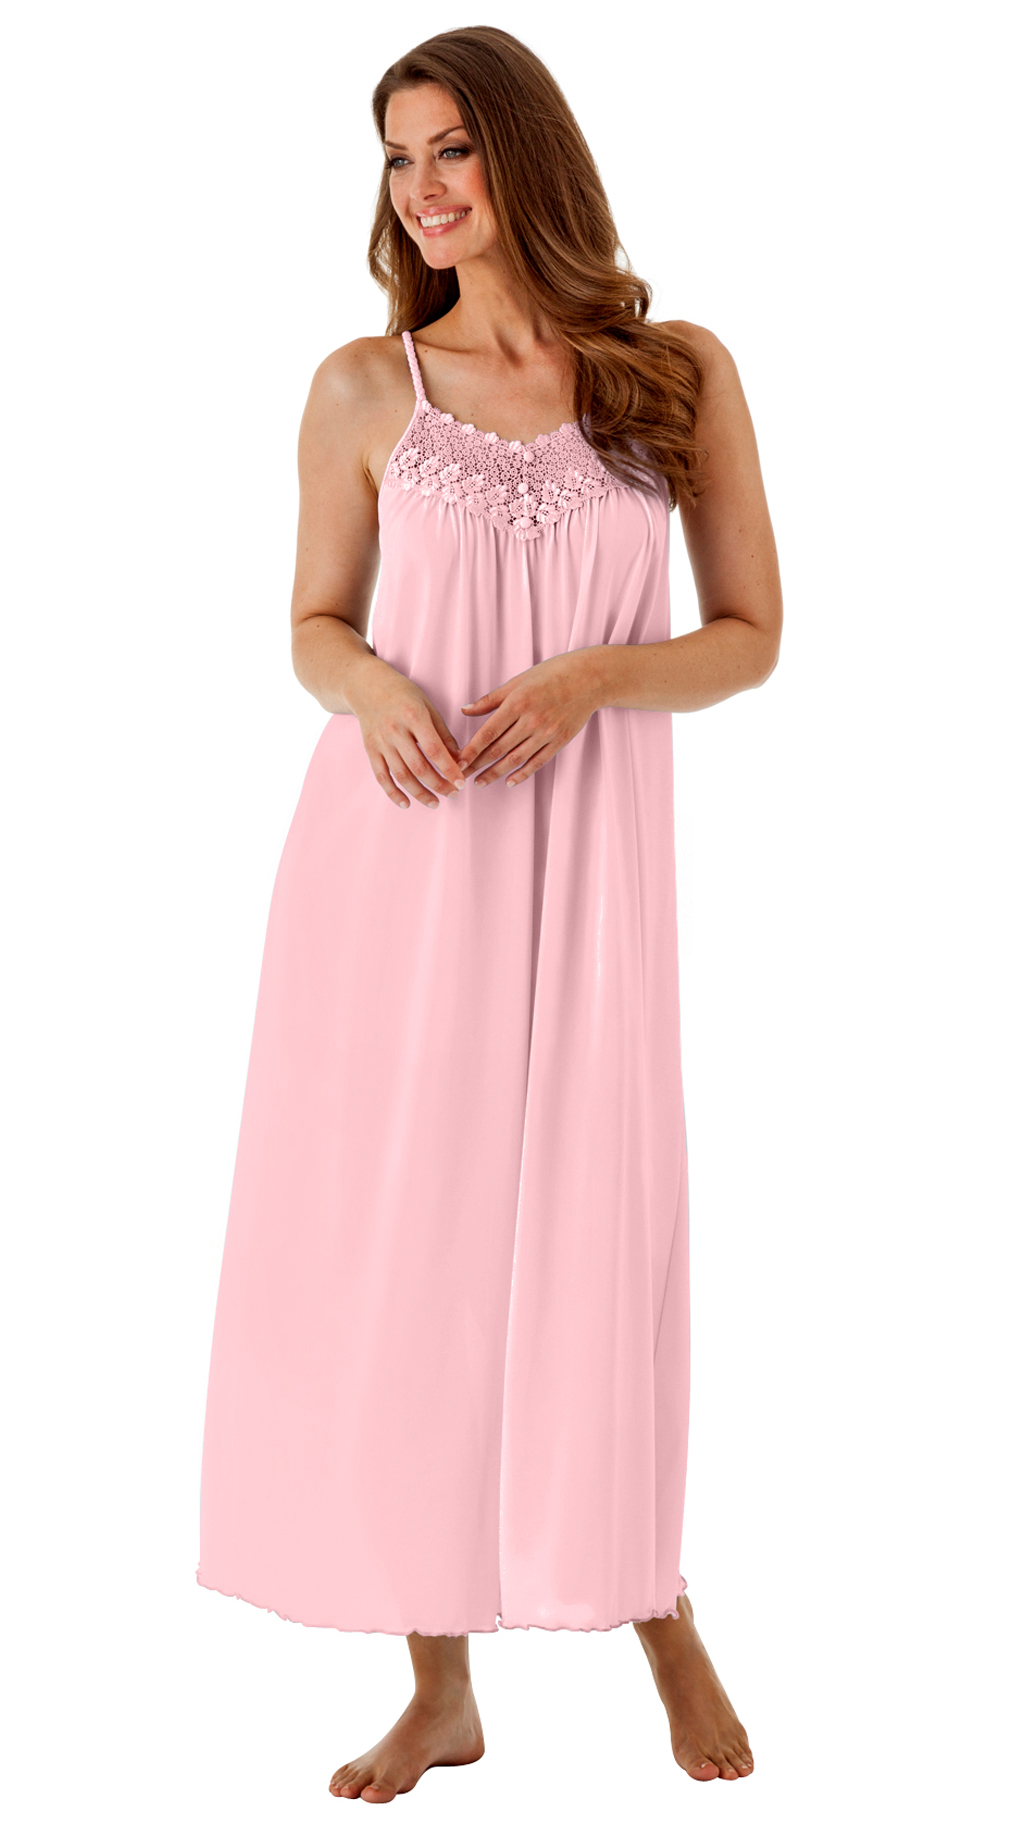 Nightgowns for Women. Sleep in style with Belk's collection of nightgowns for women. Browse nightgowns in short sleeve, sleeveless and long sleeve styles, available in white, pink, blue and a variety of fun prints. Cotton nightgowns are lightweight and soft to the touch.